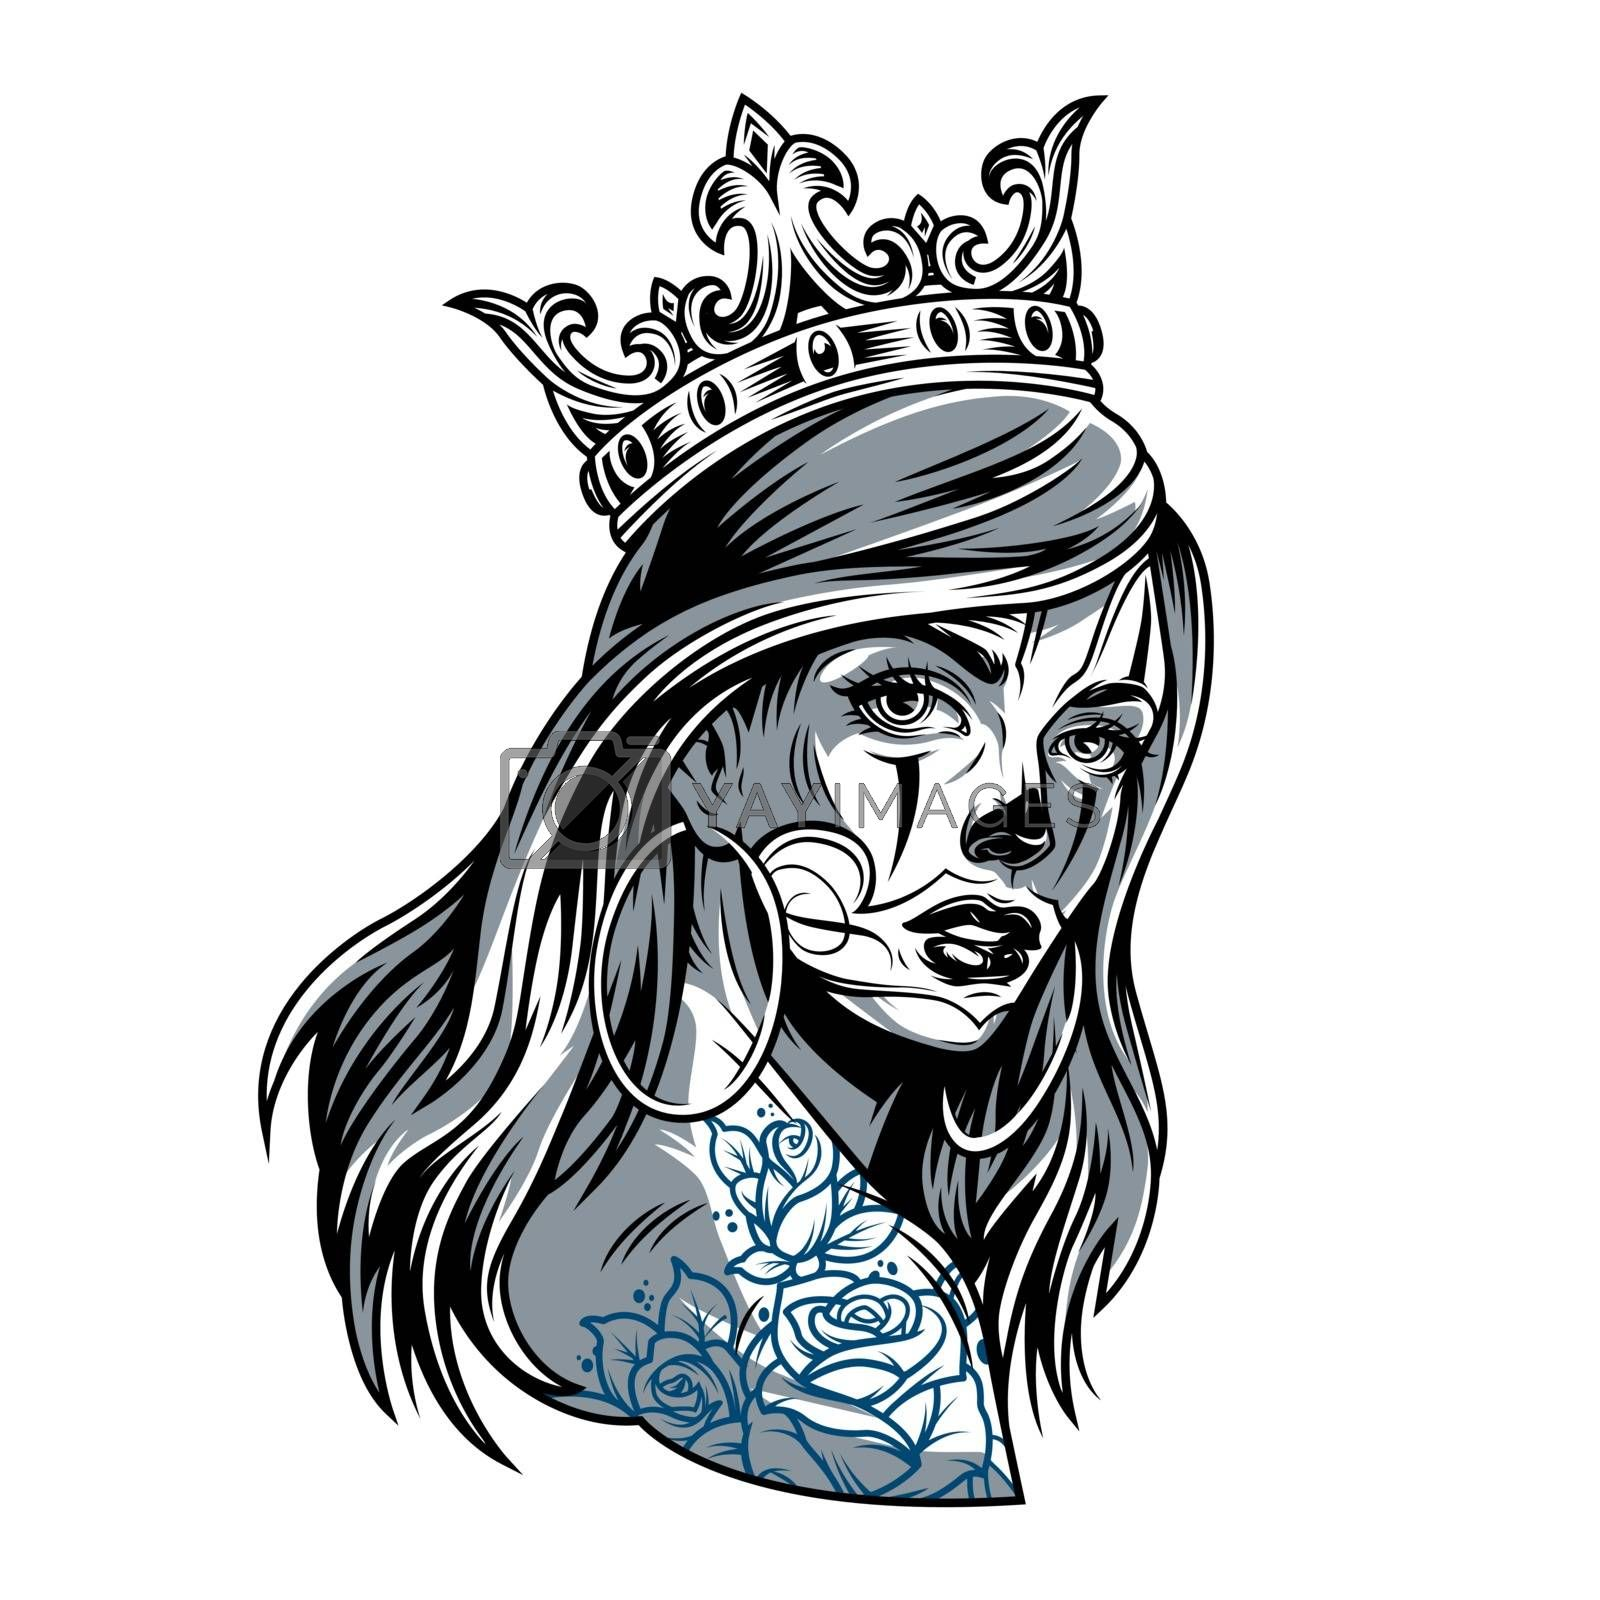 Vintage chicano girl wearing crown with round earrings and flowers tattoo on shoulder isolated vector illustration